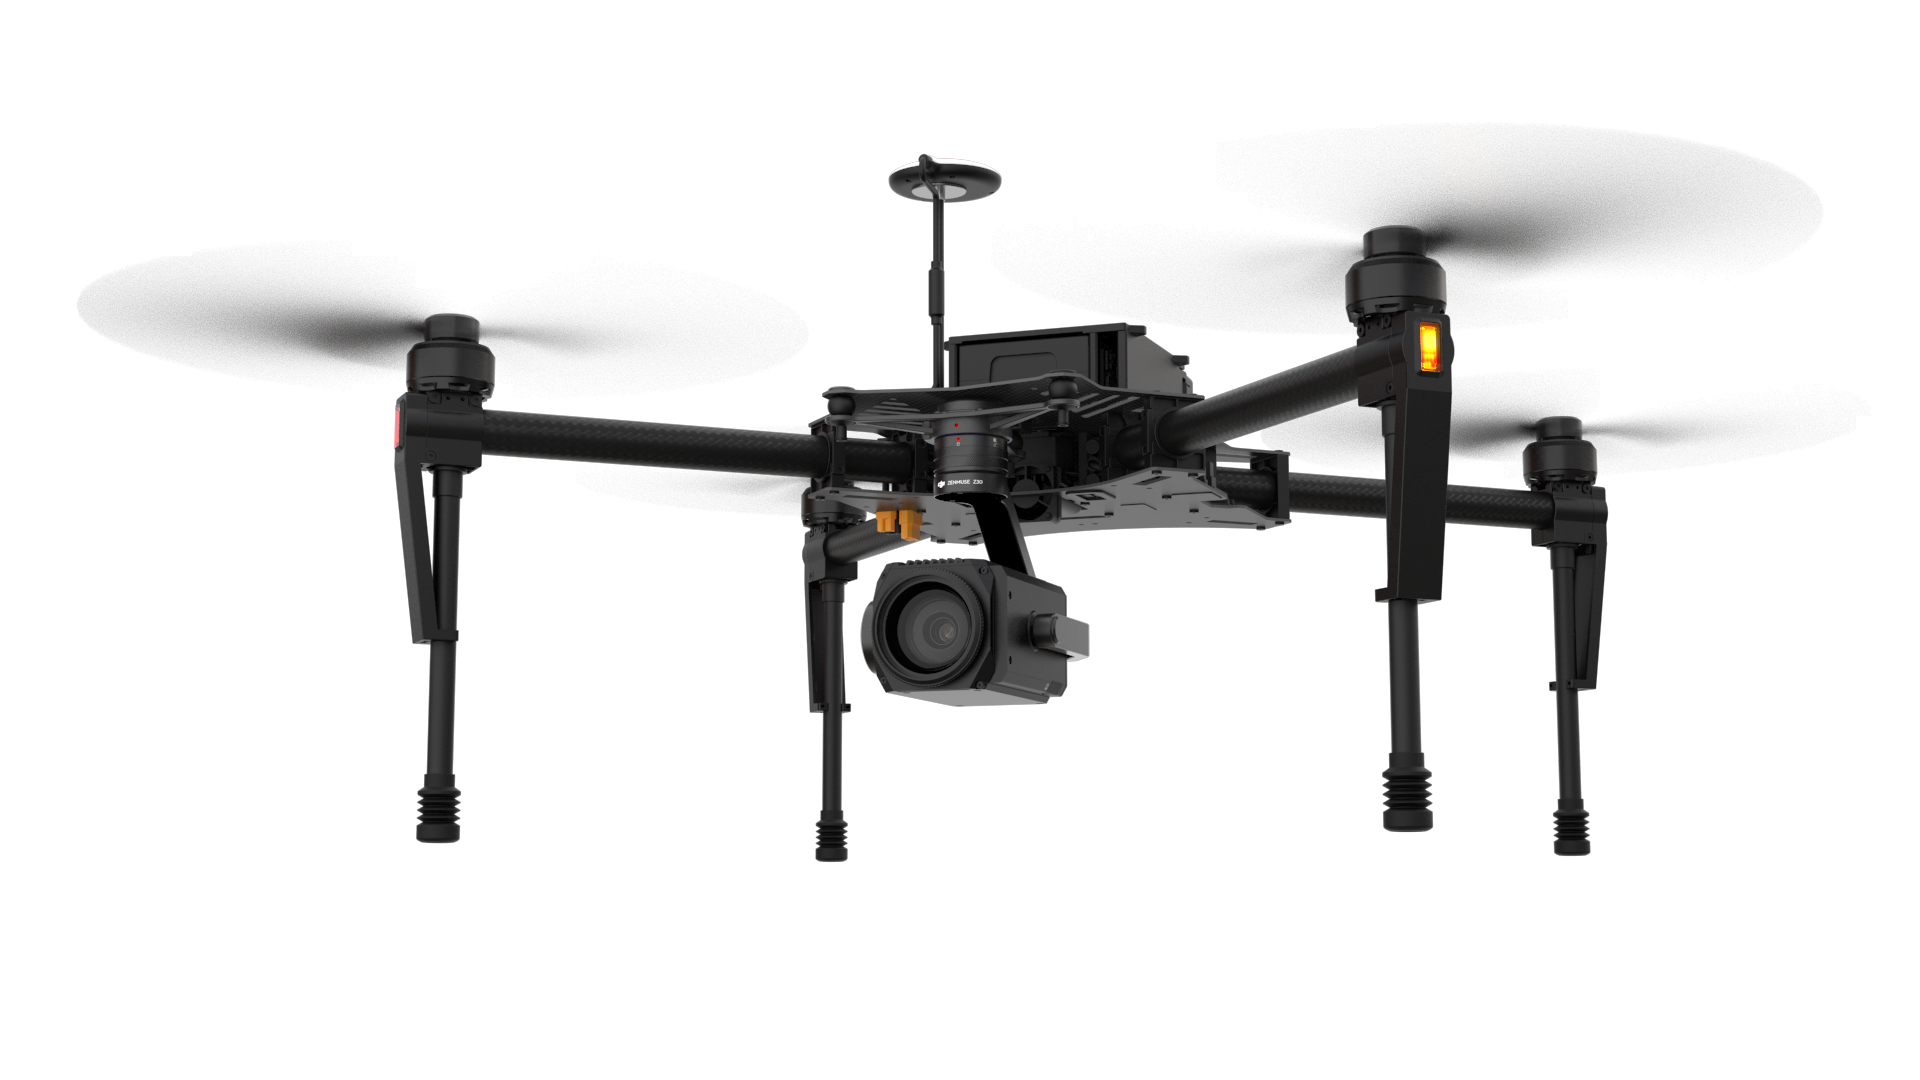 Need a zoom lens for your drone? This may be it